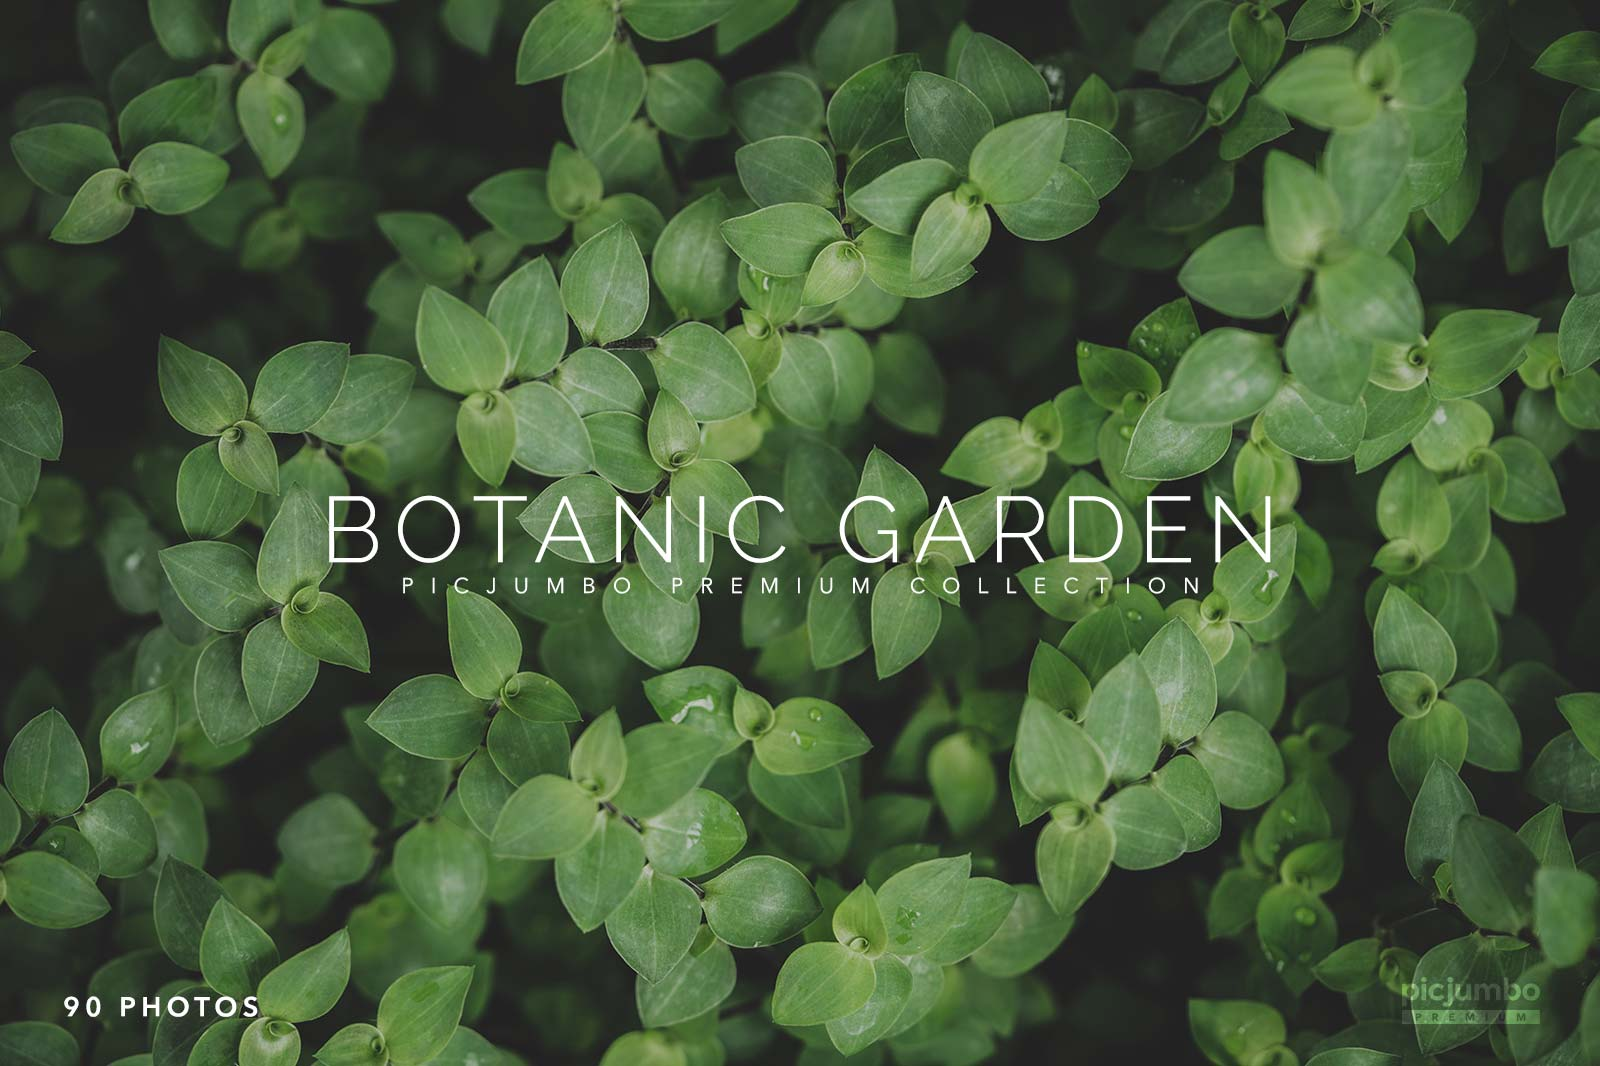 Botanic Garden — get it now in picjumbo PREMIUM!